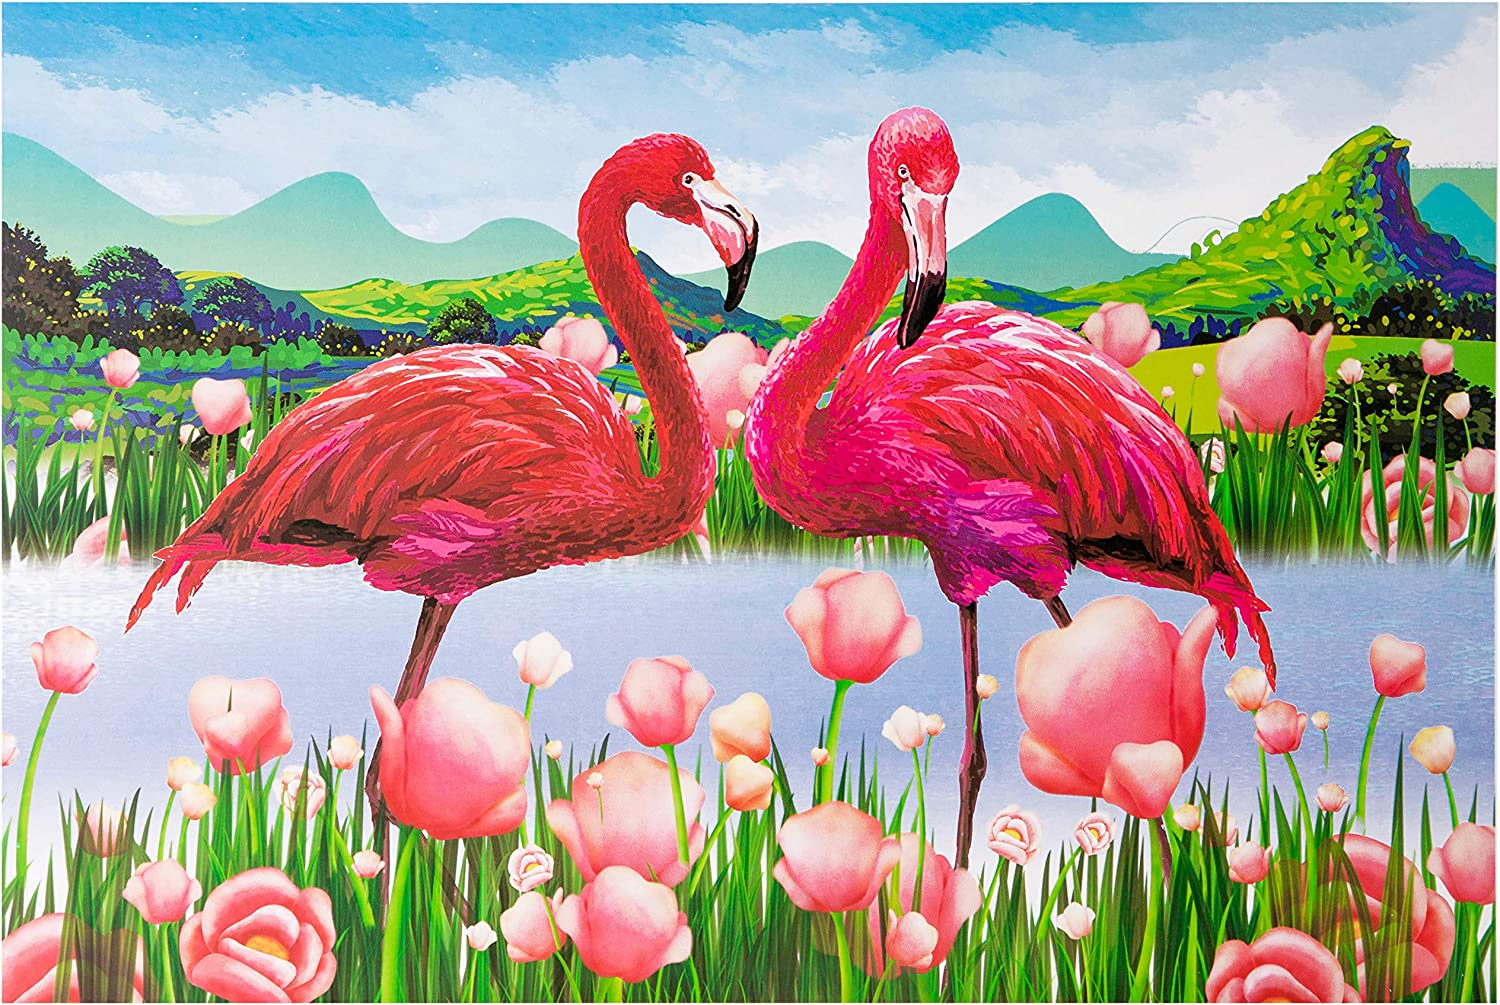 1000PCS Flamingo Jigsaw Puzzle Adults Kids, Large Intellectual Educational Game, Art Project for Home Wall Decor